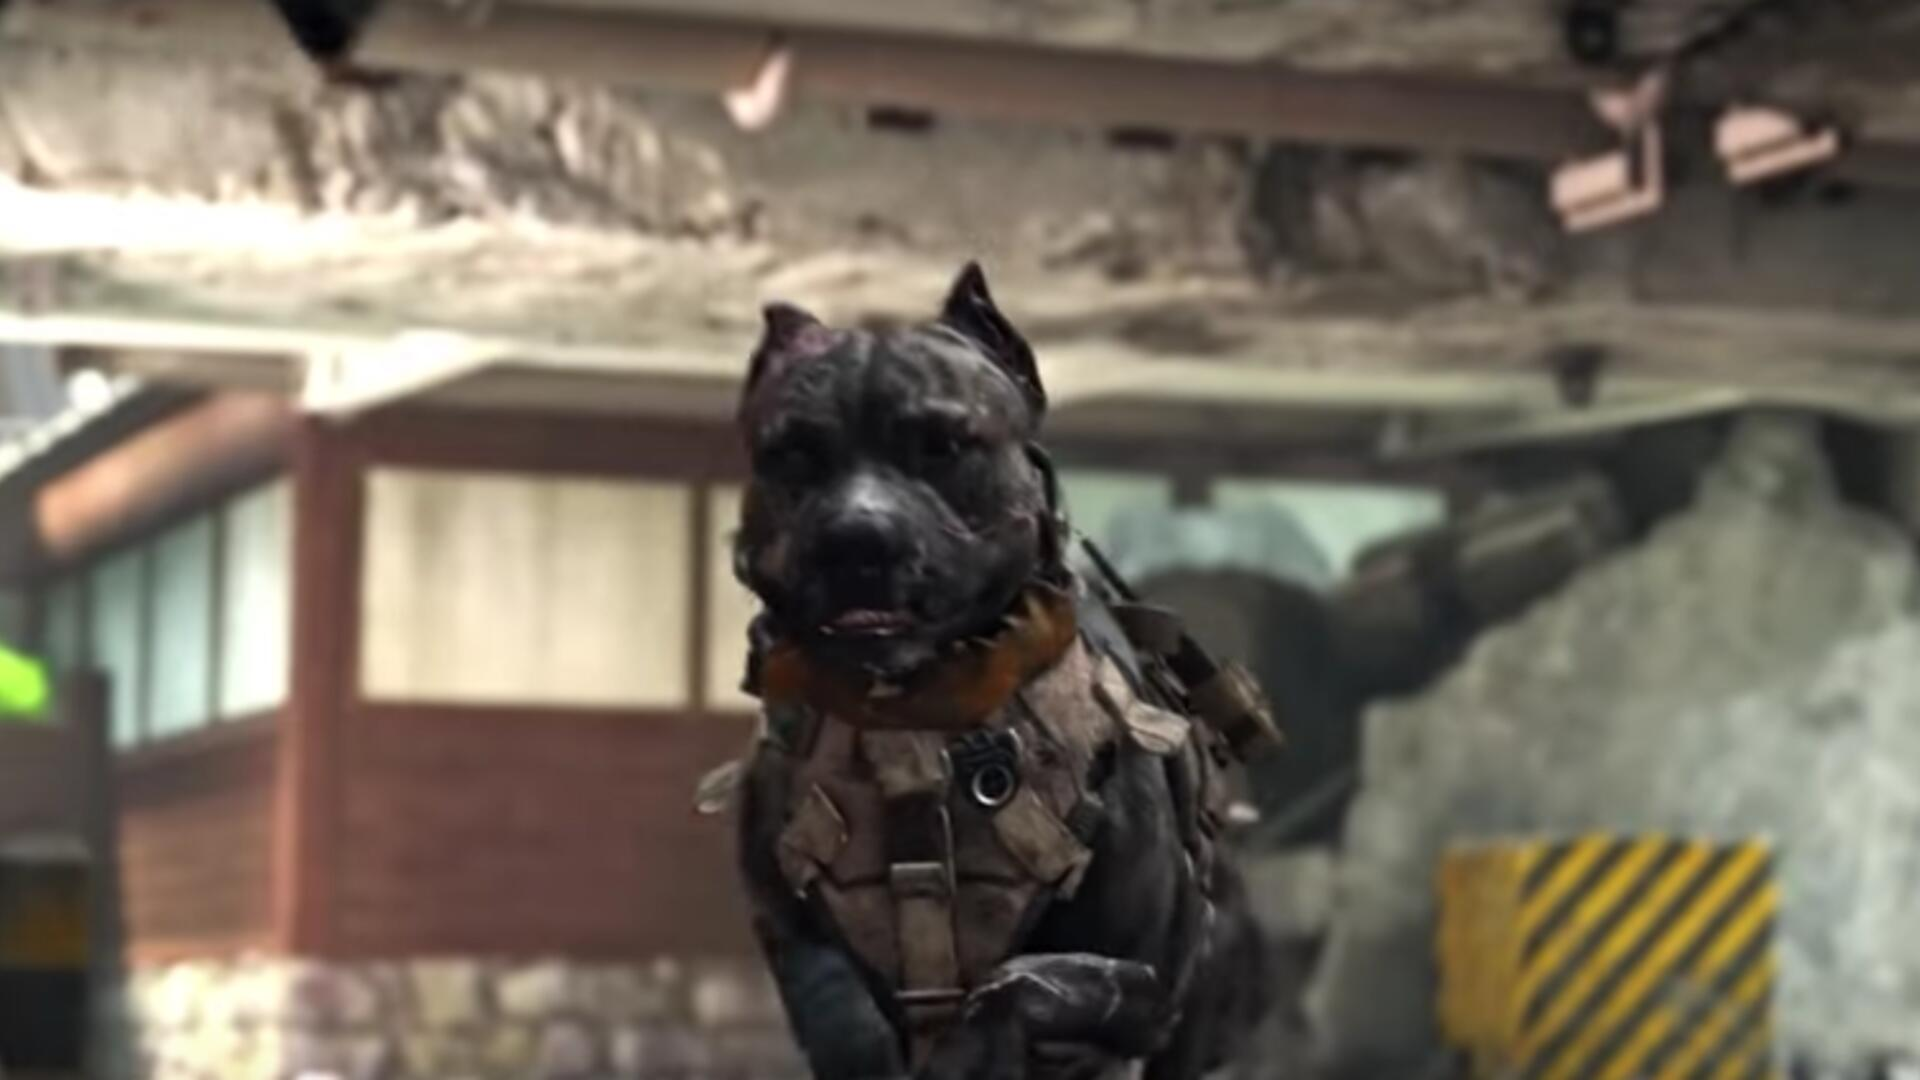 The Dogs in the Black Ops 4 Beta are Hilariously Broken